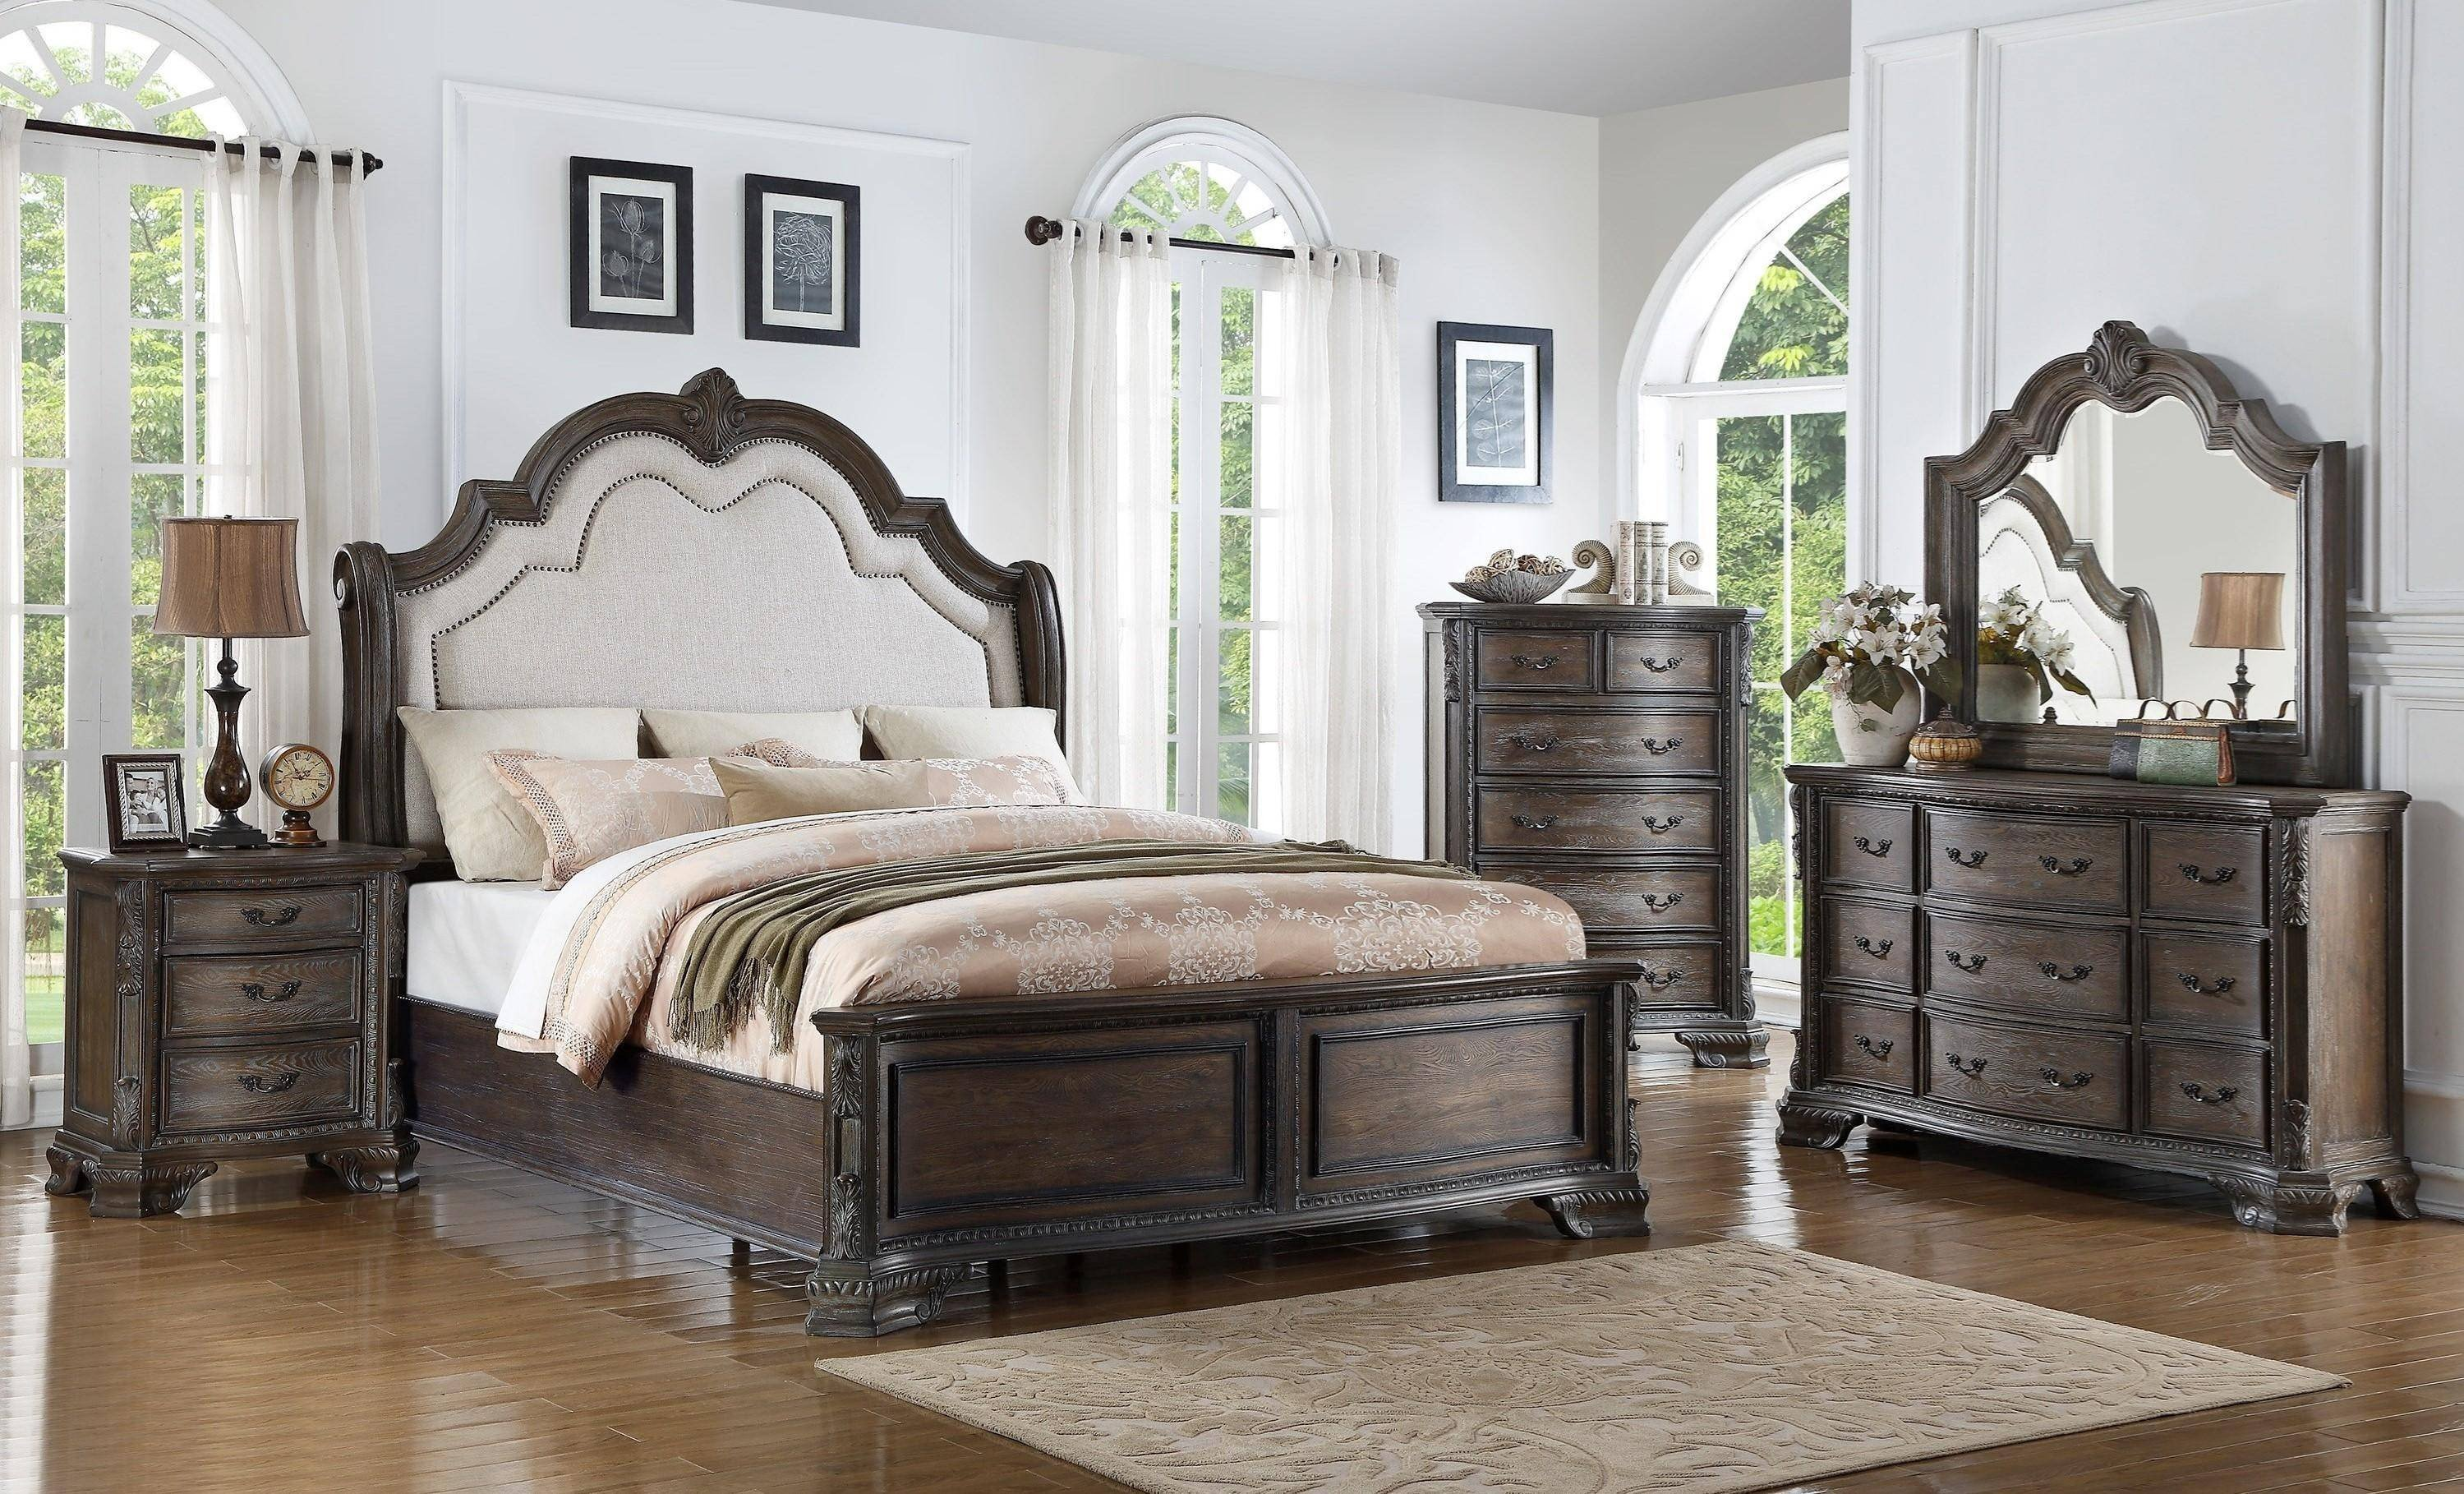 Bedroom Set with Mattress Luxury Crown Mark B1120 Sheffield Queen Panel Bed In Gray Fabric